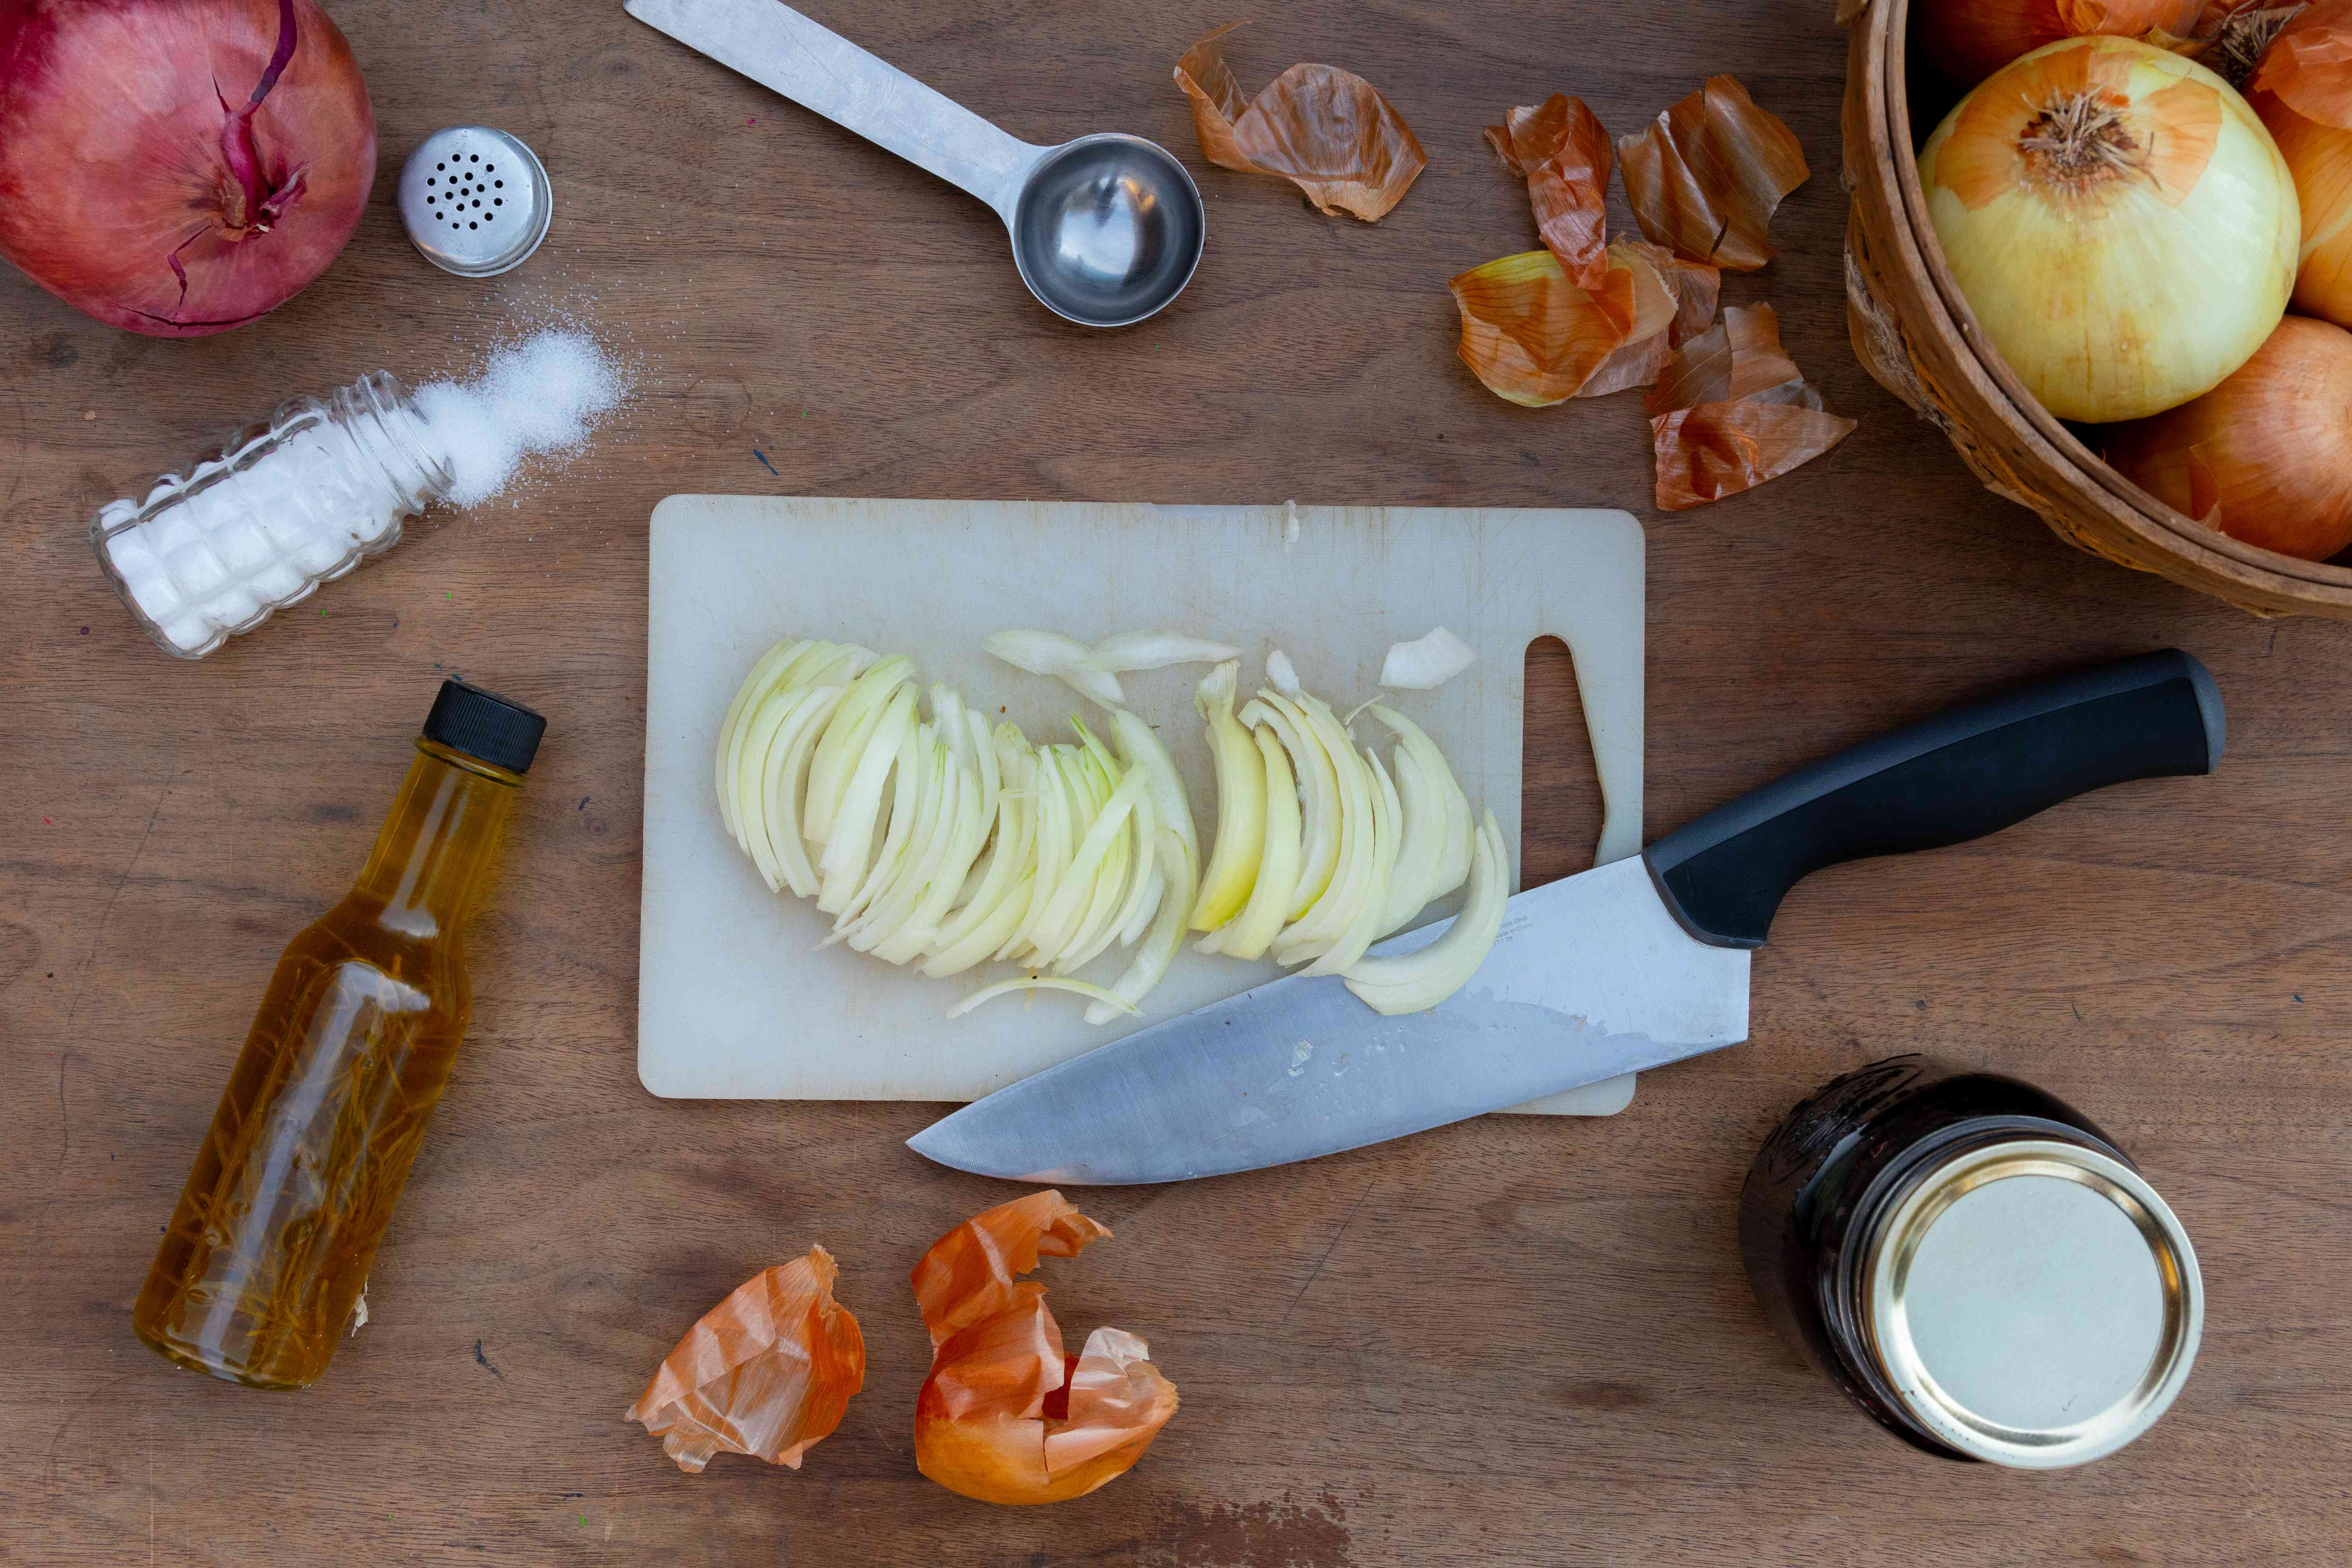 cutting up onions on board with other ingredients around